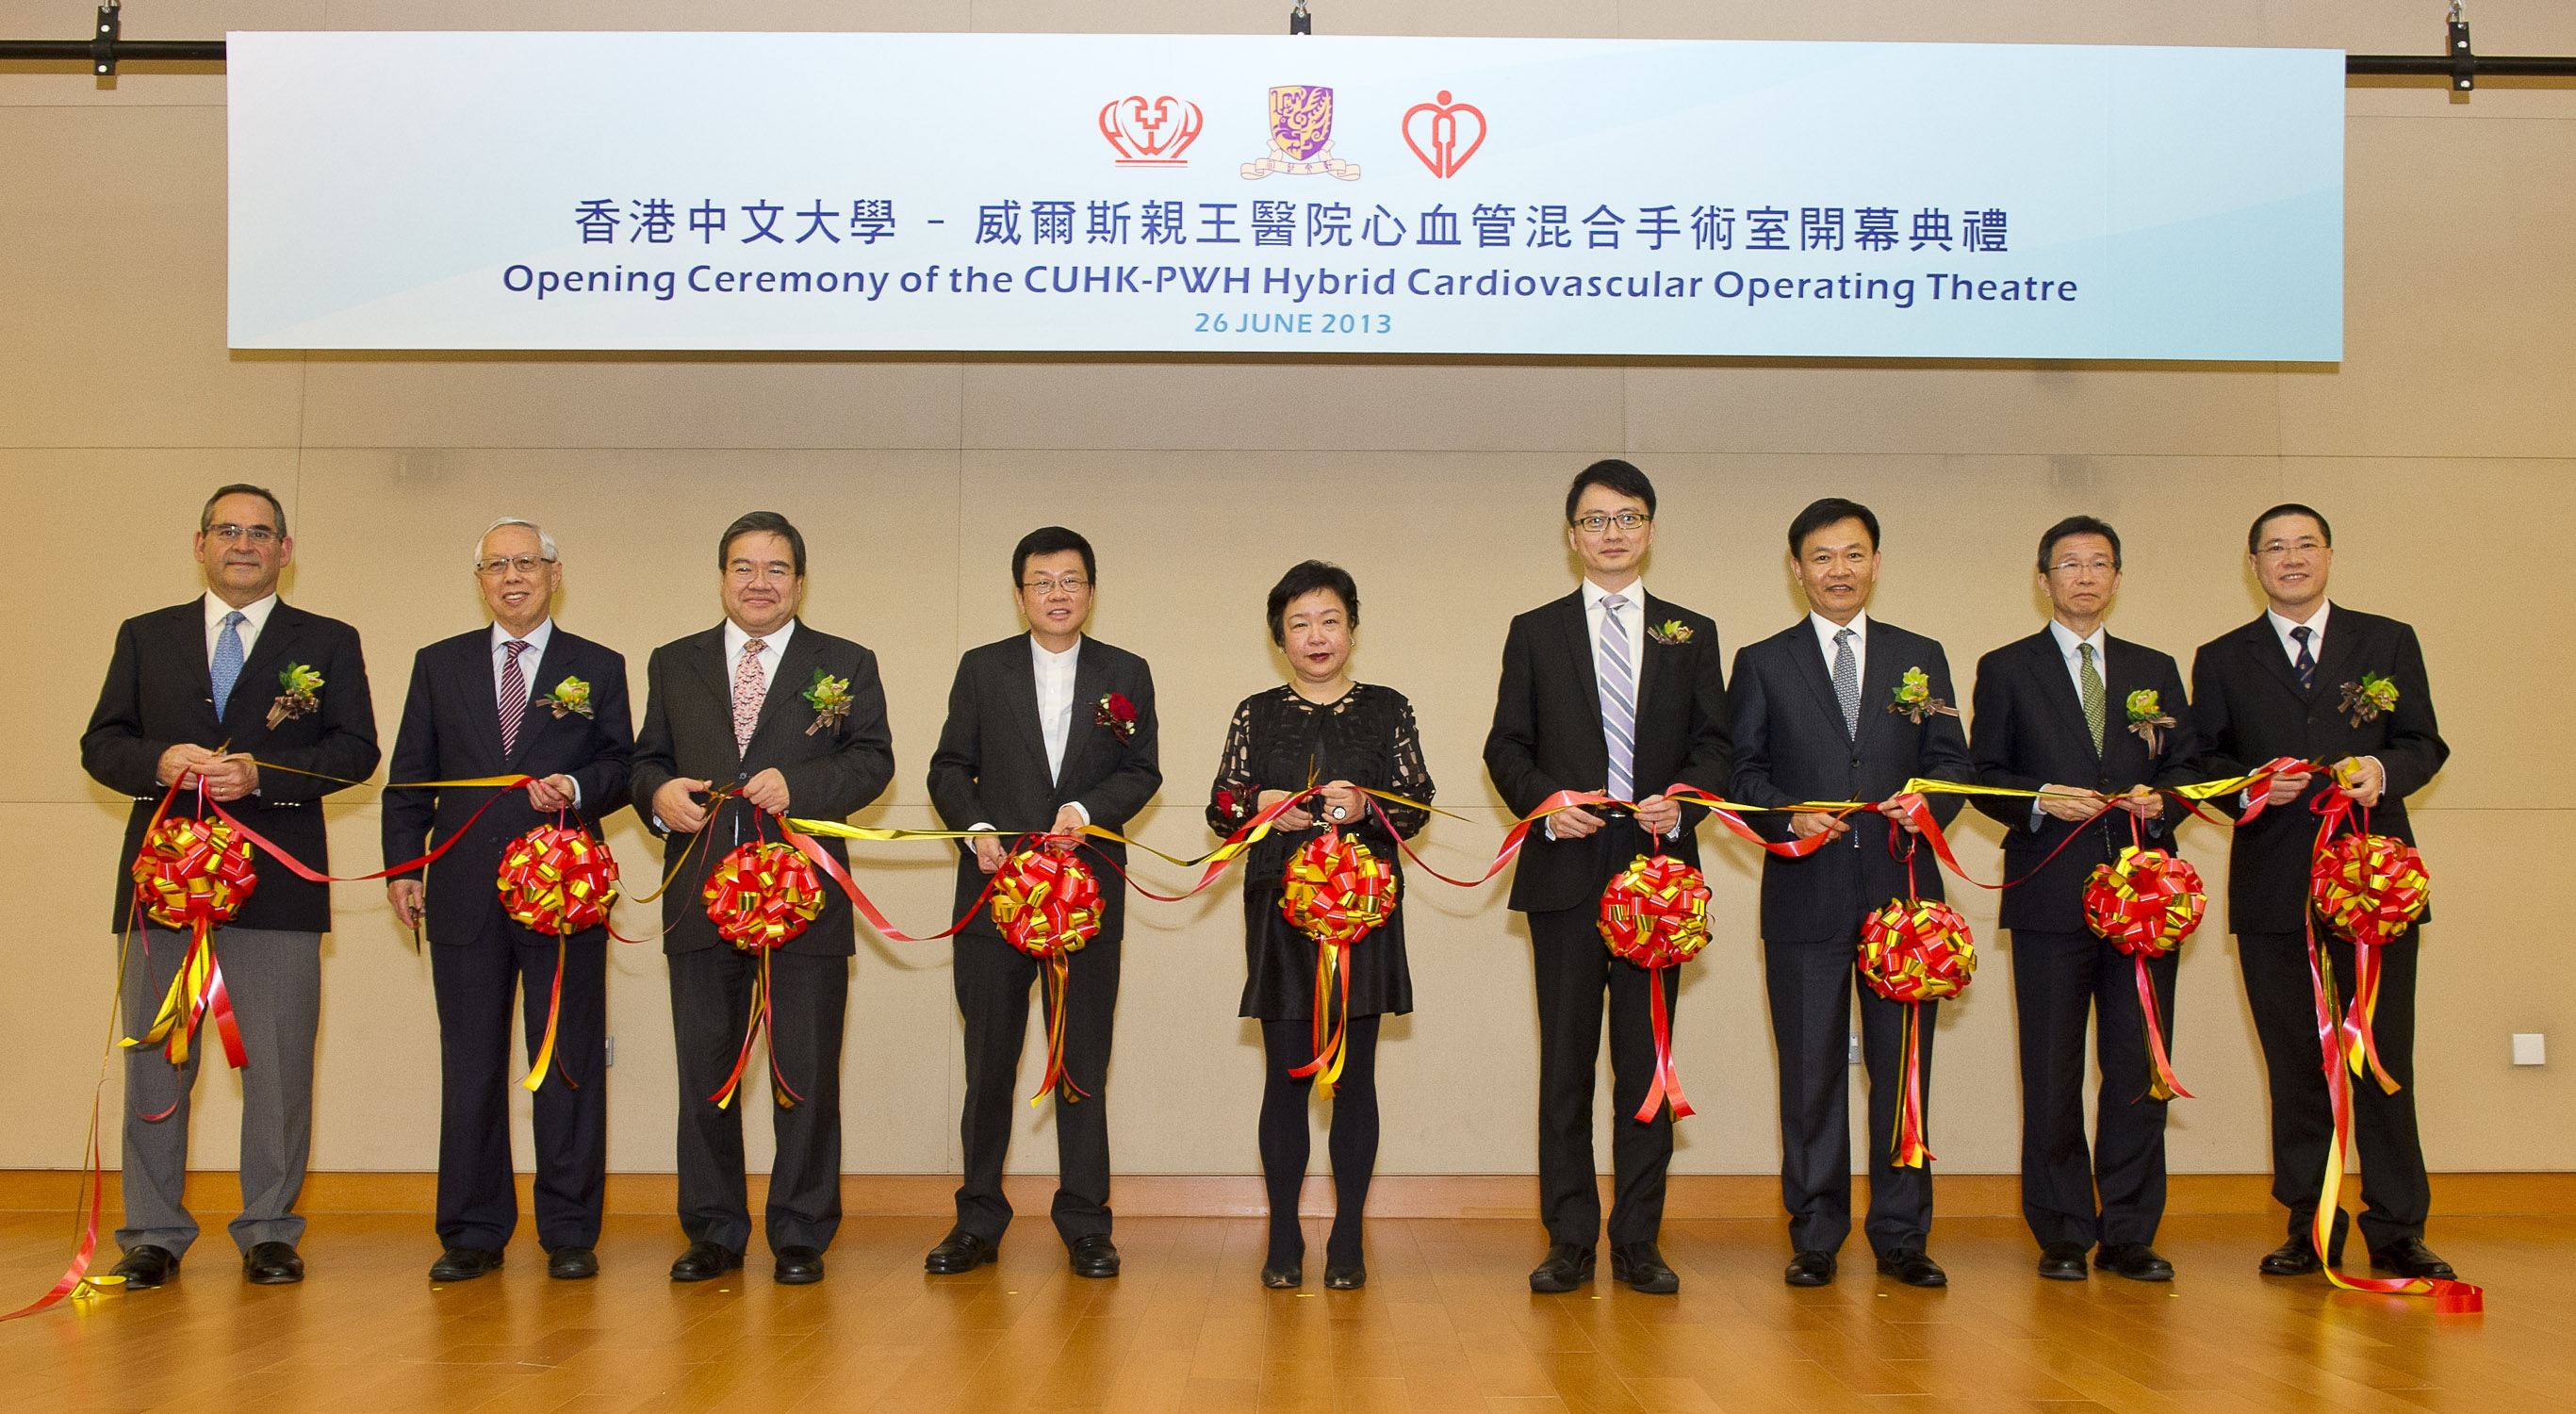 (from left) Prof. C.A. van Hasselt, Chairman, Department of Otorhinolaryngology, Head and Neck Surgery, CUHK; Mr. Edward Ho, Chairman of the Hospital Governing Committee, Prince of Wales Hospital; Mr. Anthony Wu, Chairman, Hospital Authority (HA); Mr. Raymond Yim Chun-man and Ms. Grace Fong Yin-cheung, representatives of the donor; Prof. Francis K.L. Chan, Dean of Medicine, CUHK; Dr. Leung Pak Yin, HA Chief Executive; Dr. Fung Hong, Cluster Chief Executive, New Territories East Cluster; and Prof. Paul B.S. Lai, Chairman, Department of Surgery, CUHK